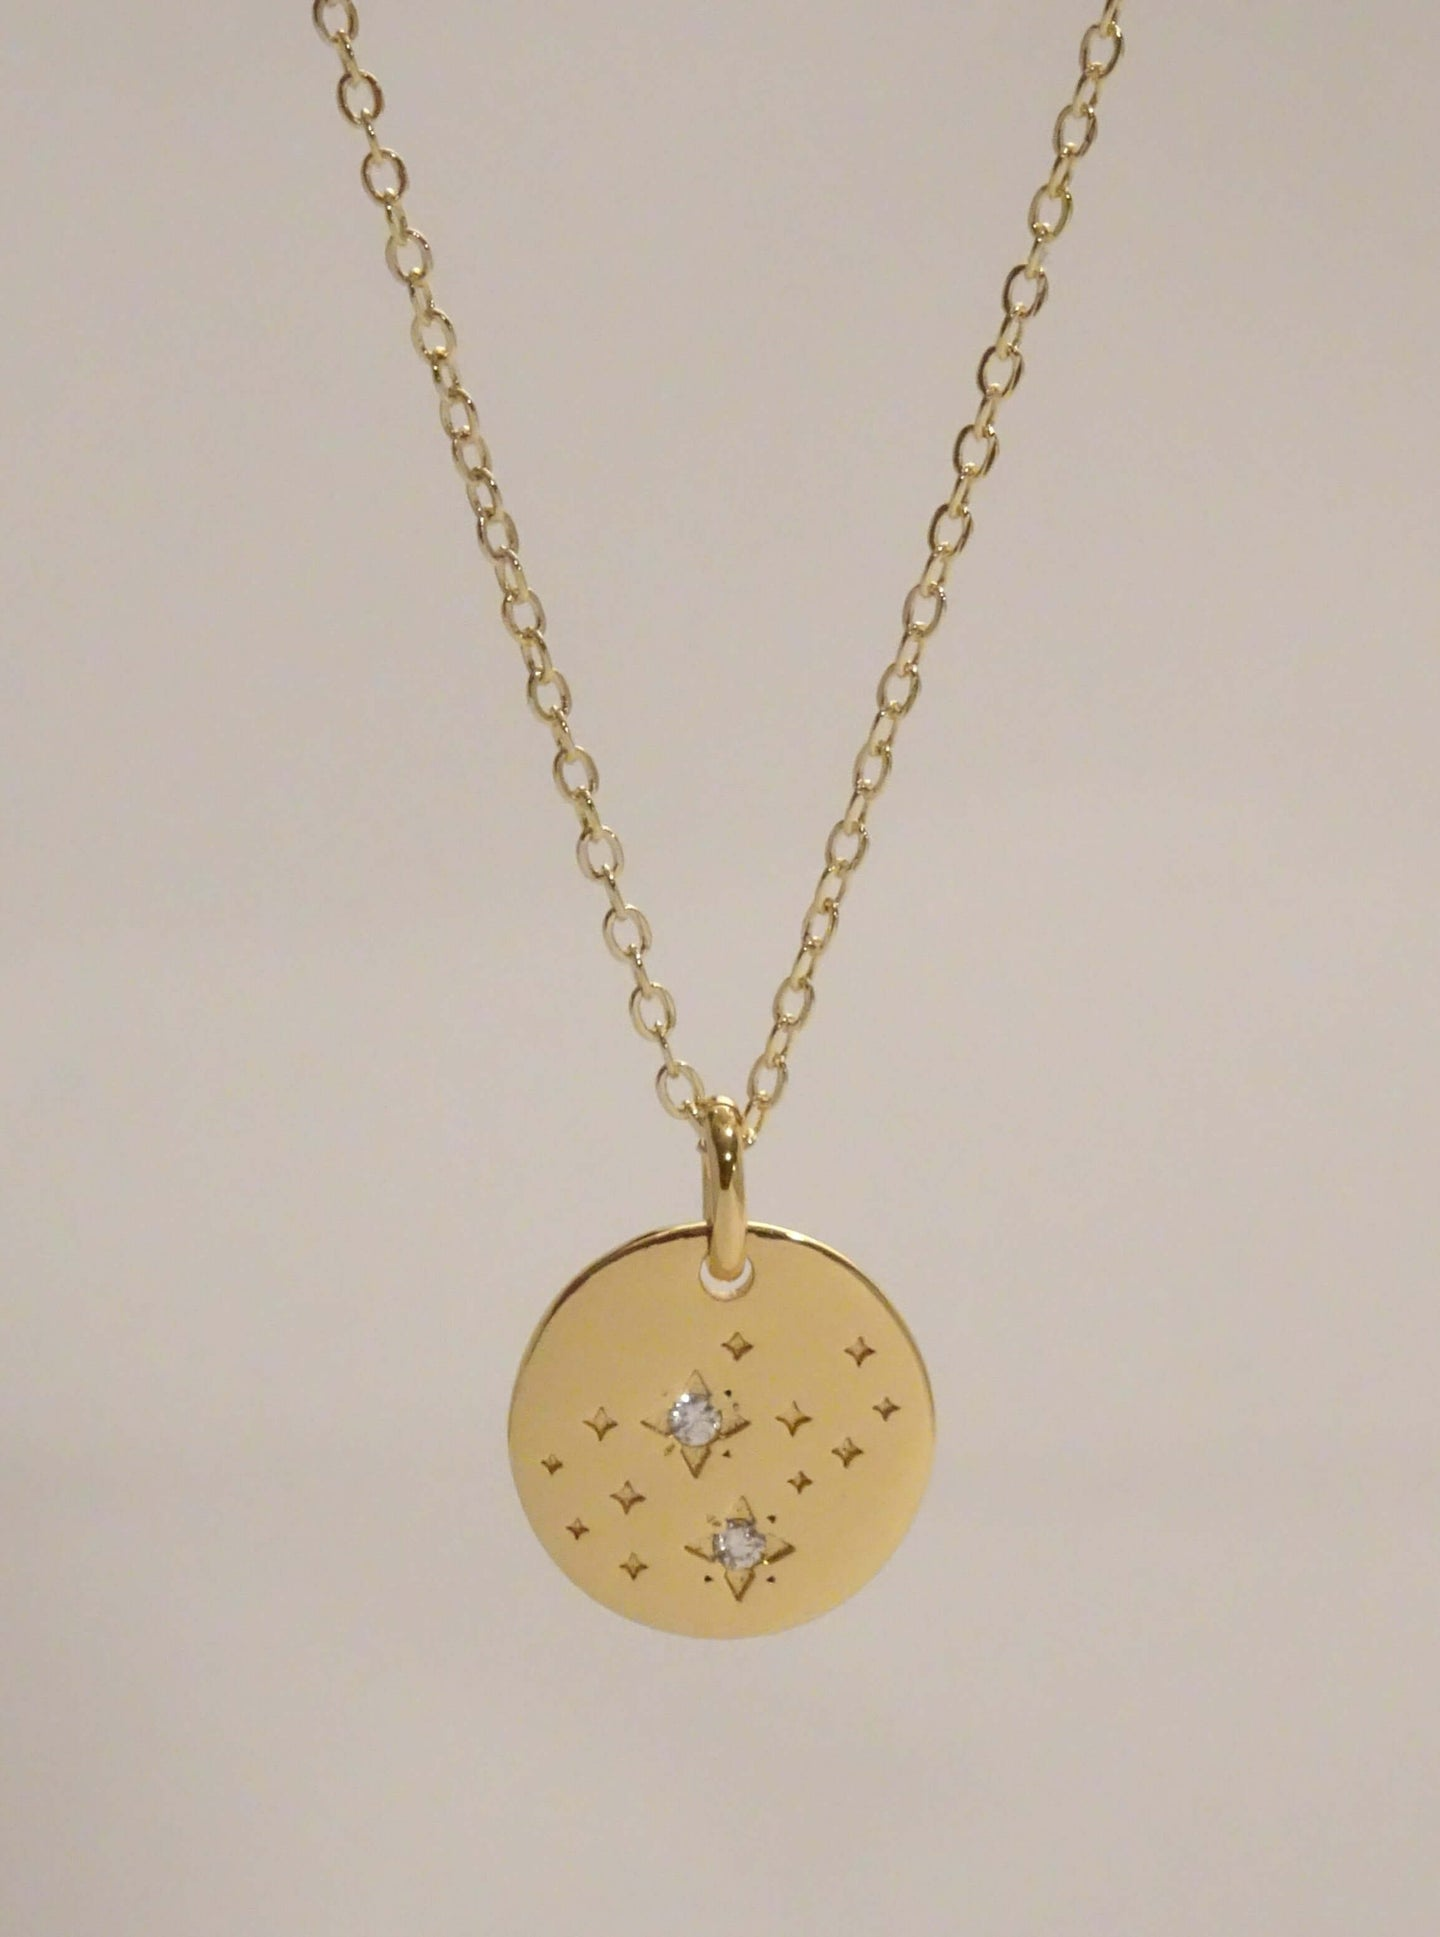 virgo necklace, virgo necklace gold, virgo necklace silver, virgo pendant necklace, zodiac necklace virgo, virgo jewelry, virgo necklace for men, zodiac sign necklace, zodiac necklace gold, zodiac pendant necklace, zodiac constellation necklace